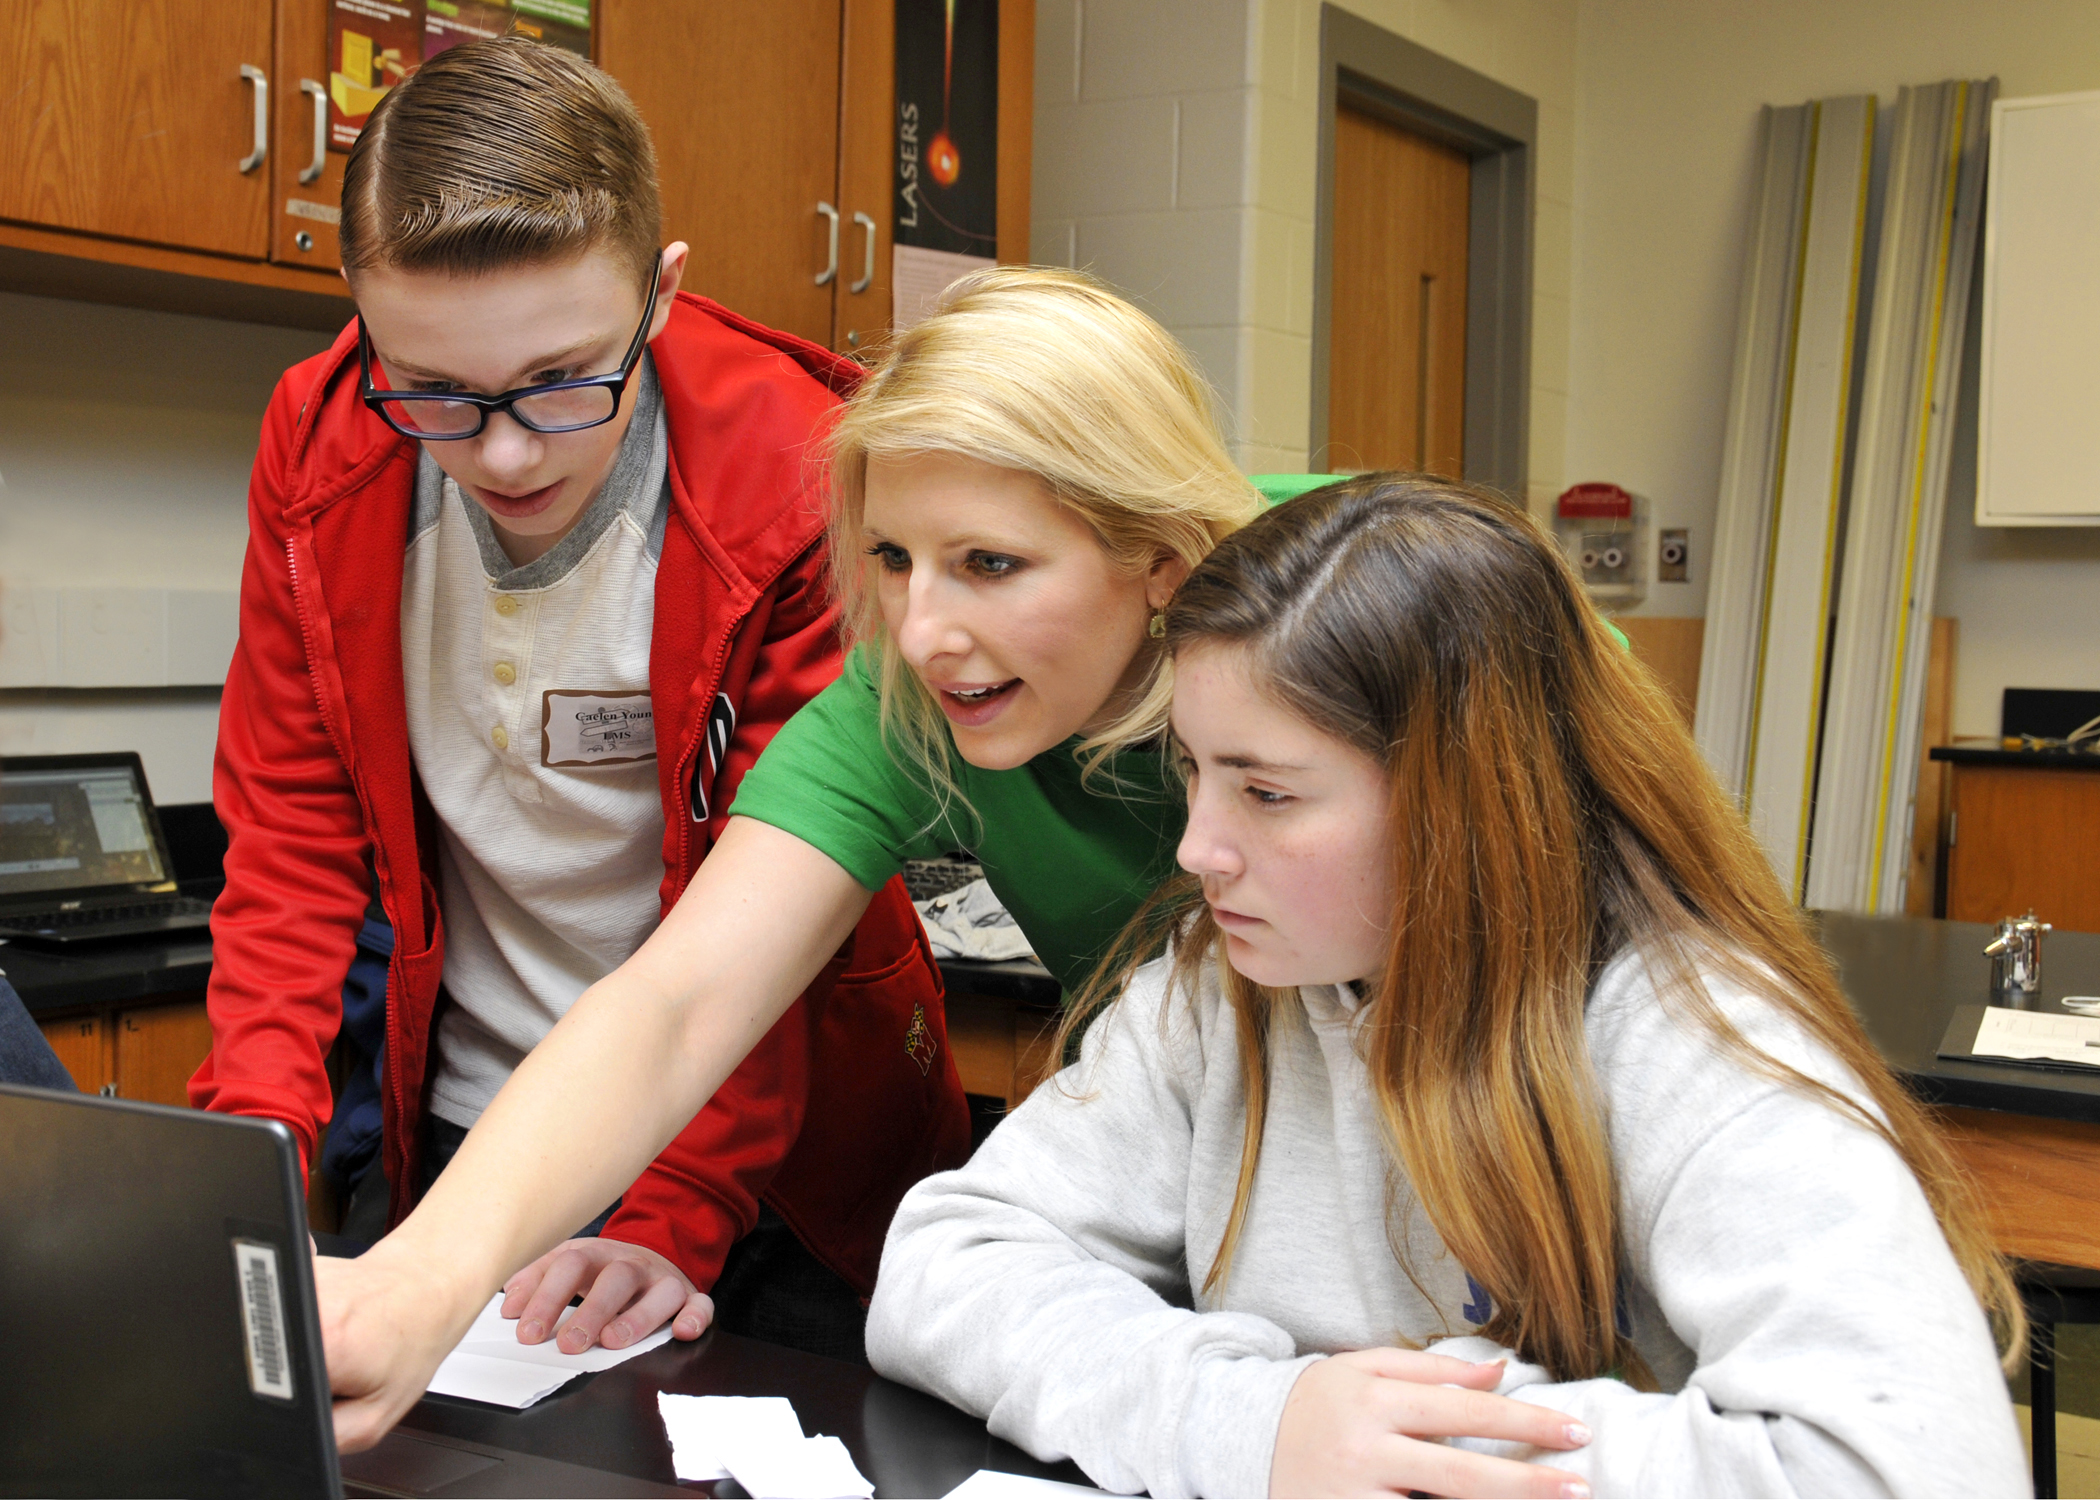 Katrina Griffin standing between two students pointing to a computer.